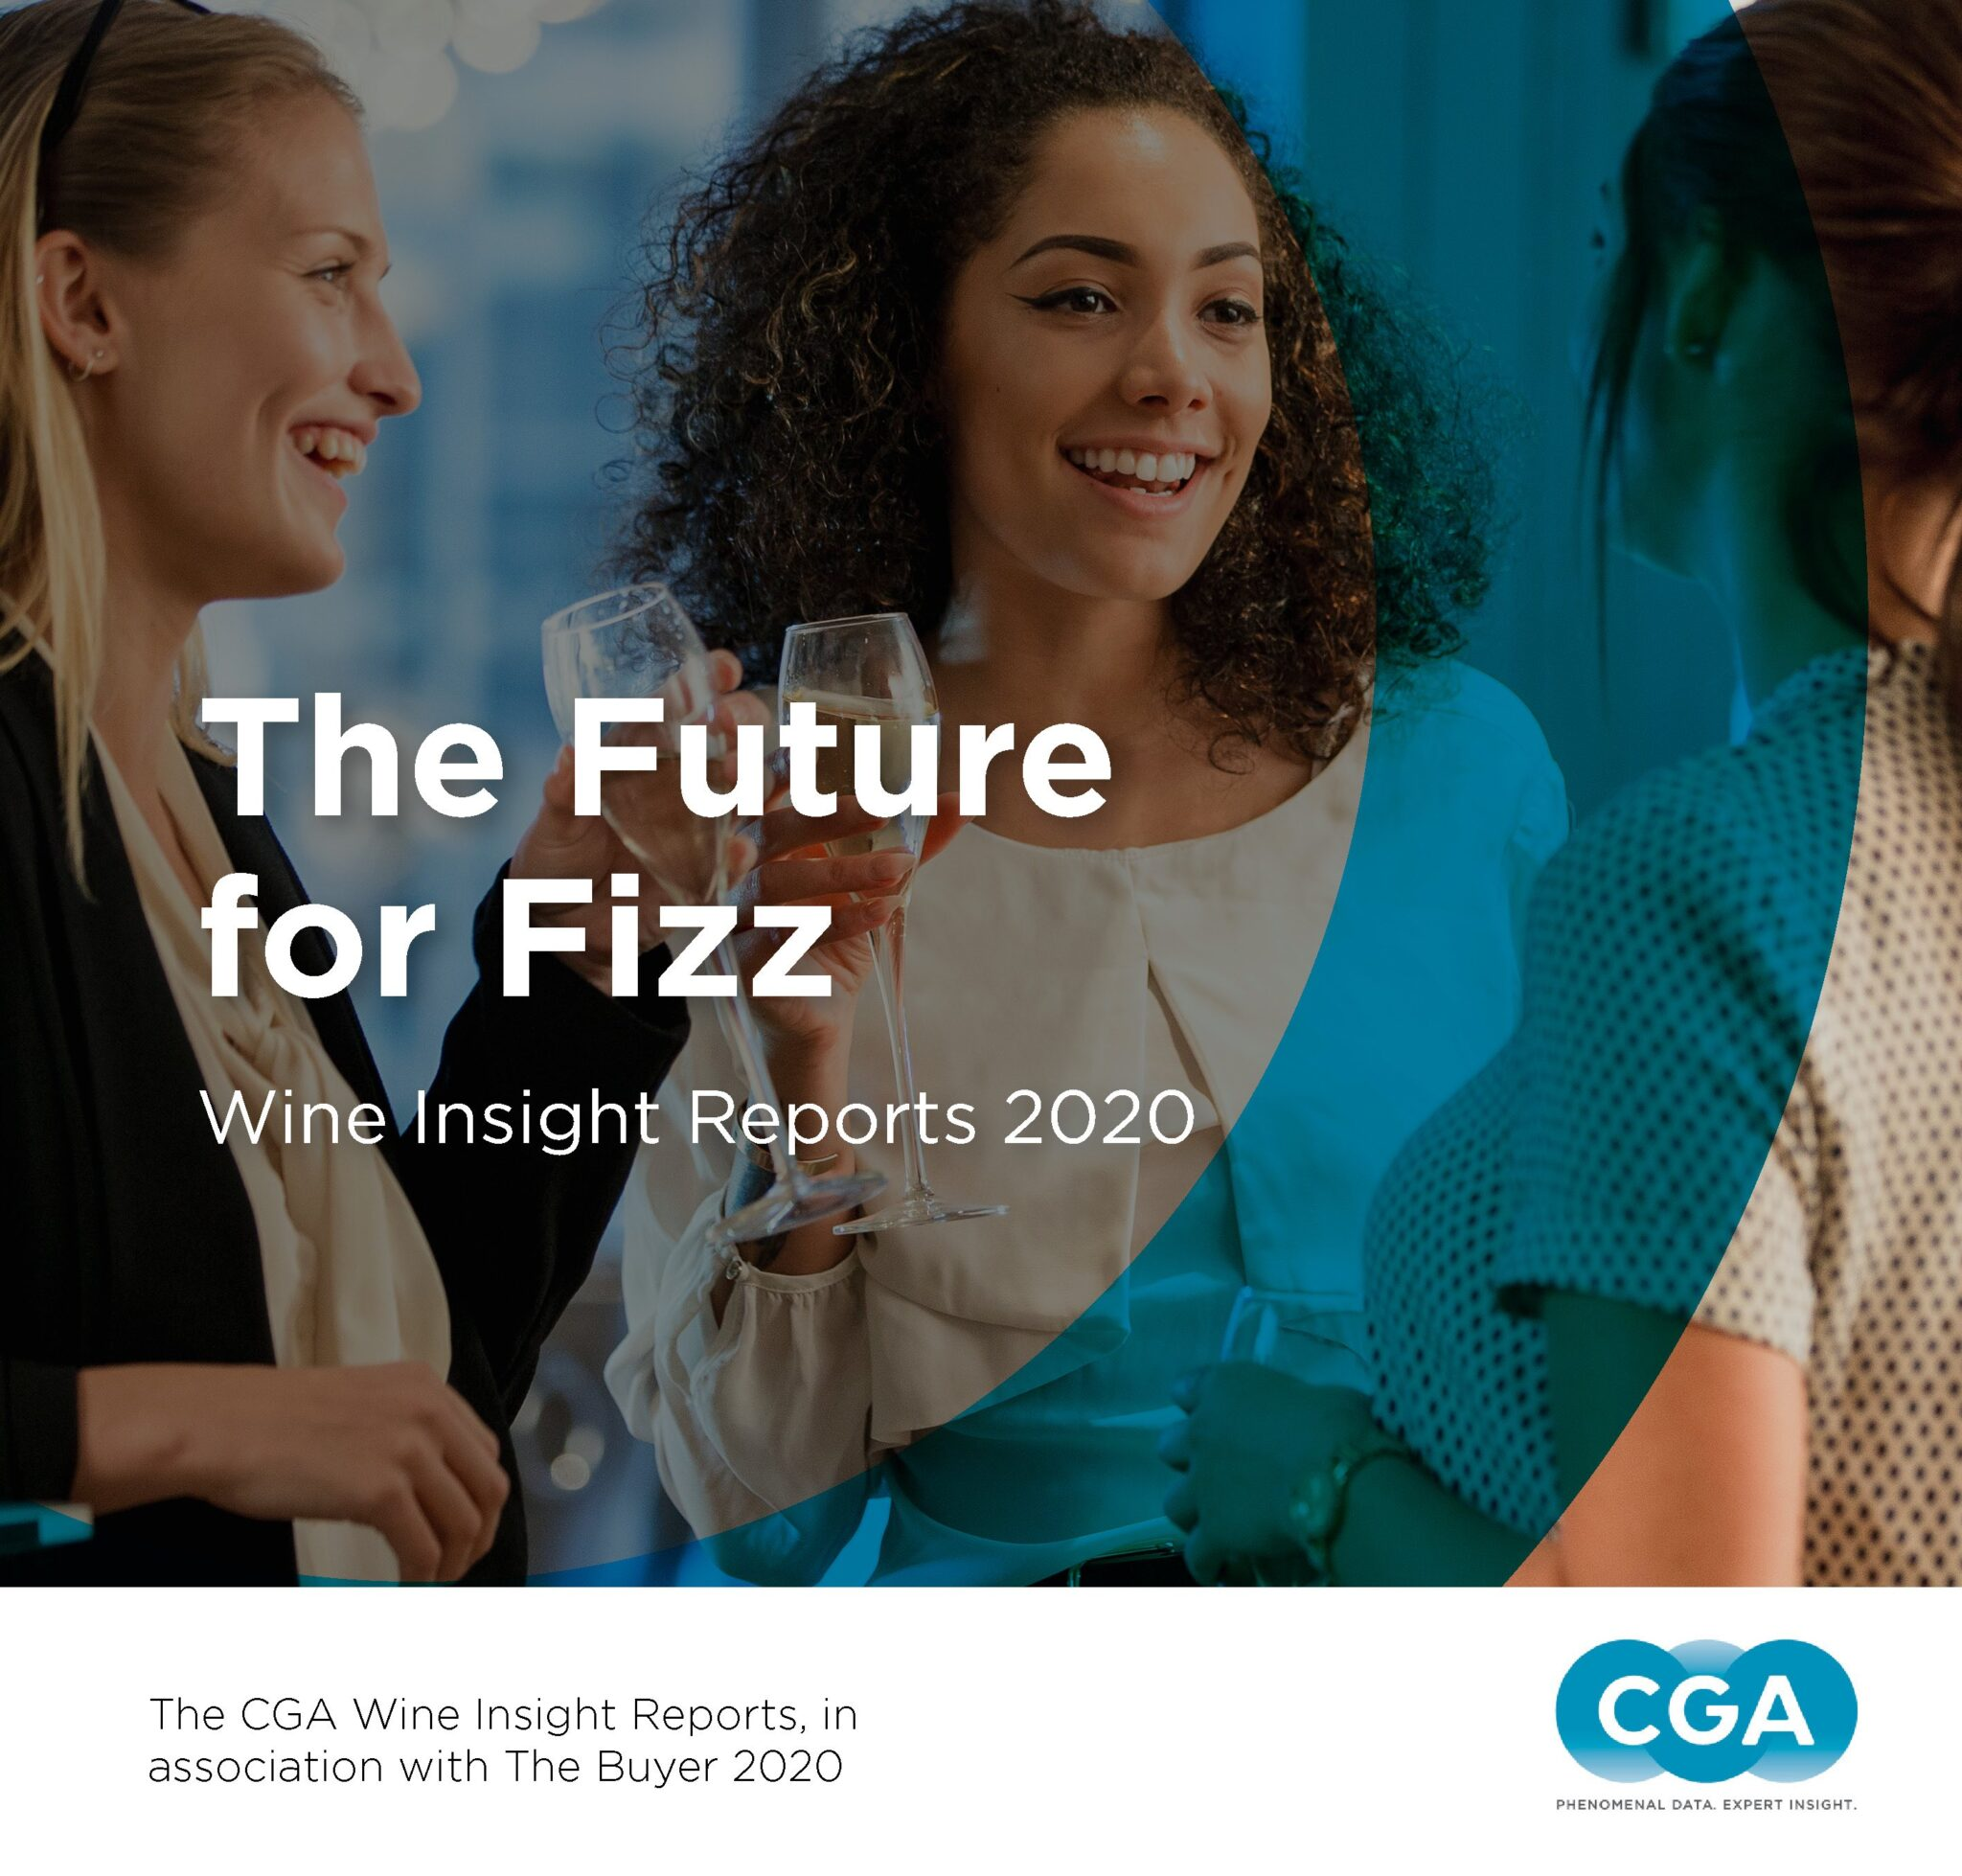 CGA & The Buyer Report: How to make the most of the 'Future for Fizz'